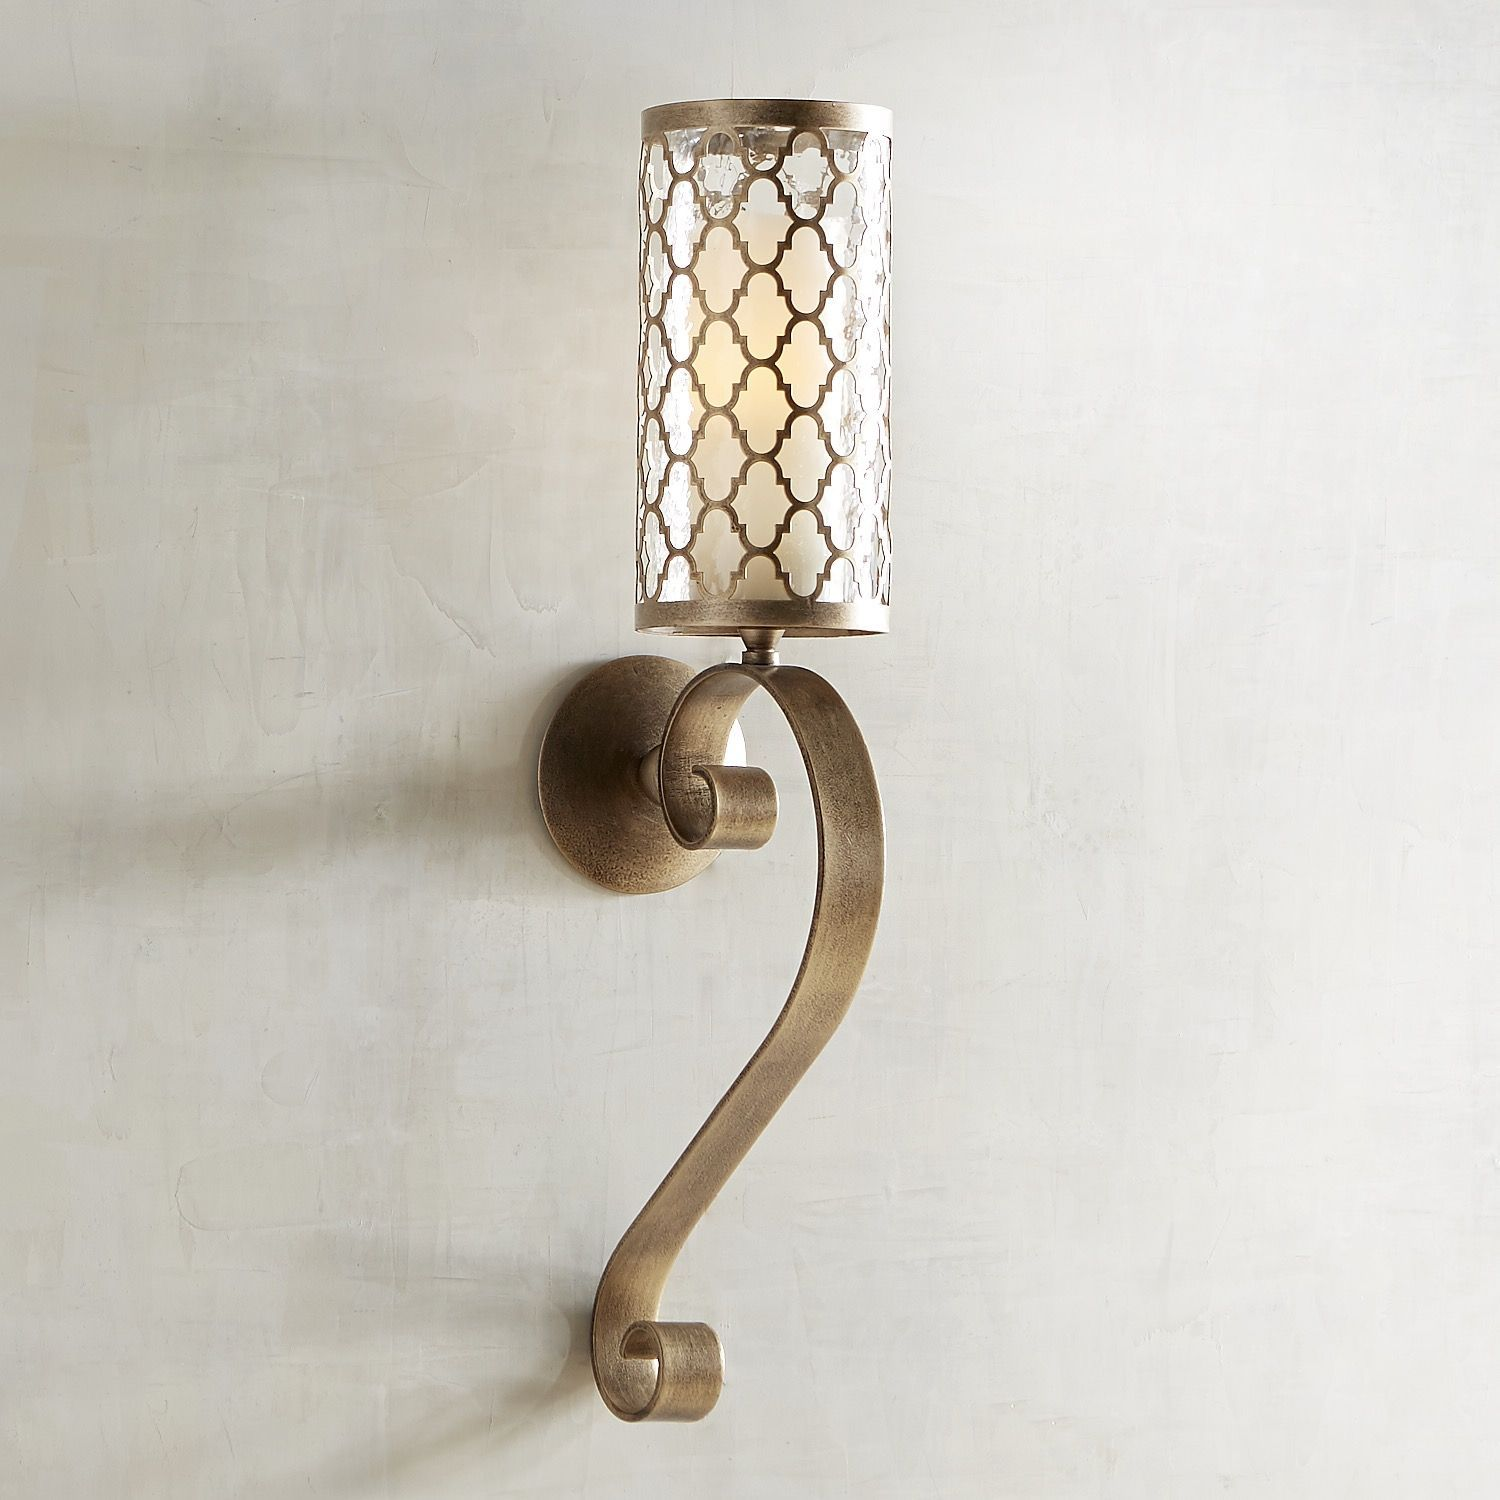 wall candleholders uttermost sconces productdetail htm to sconce holders set of joselyn zoom hover small two candle